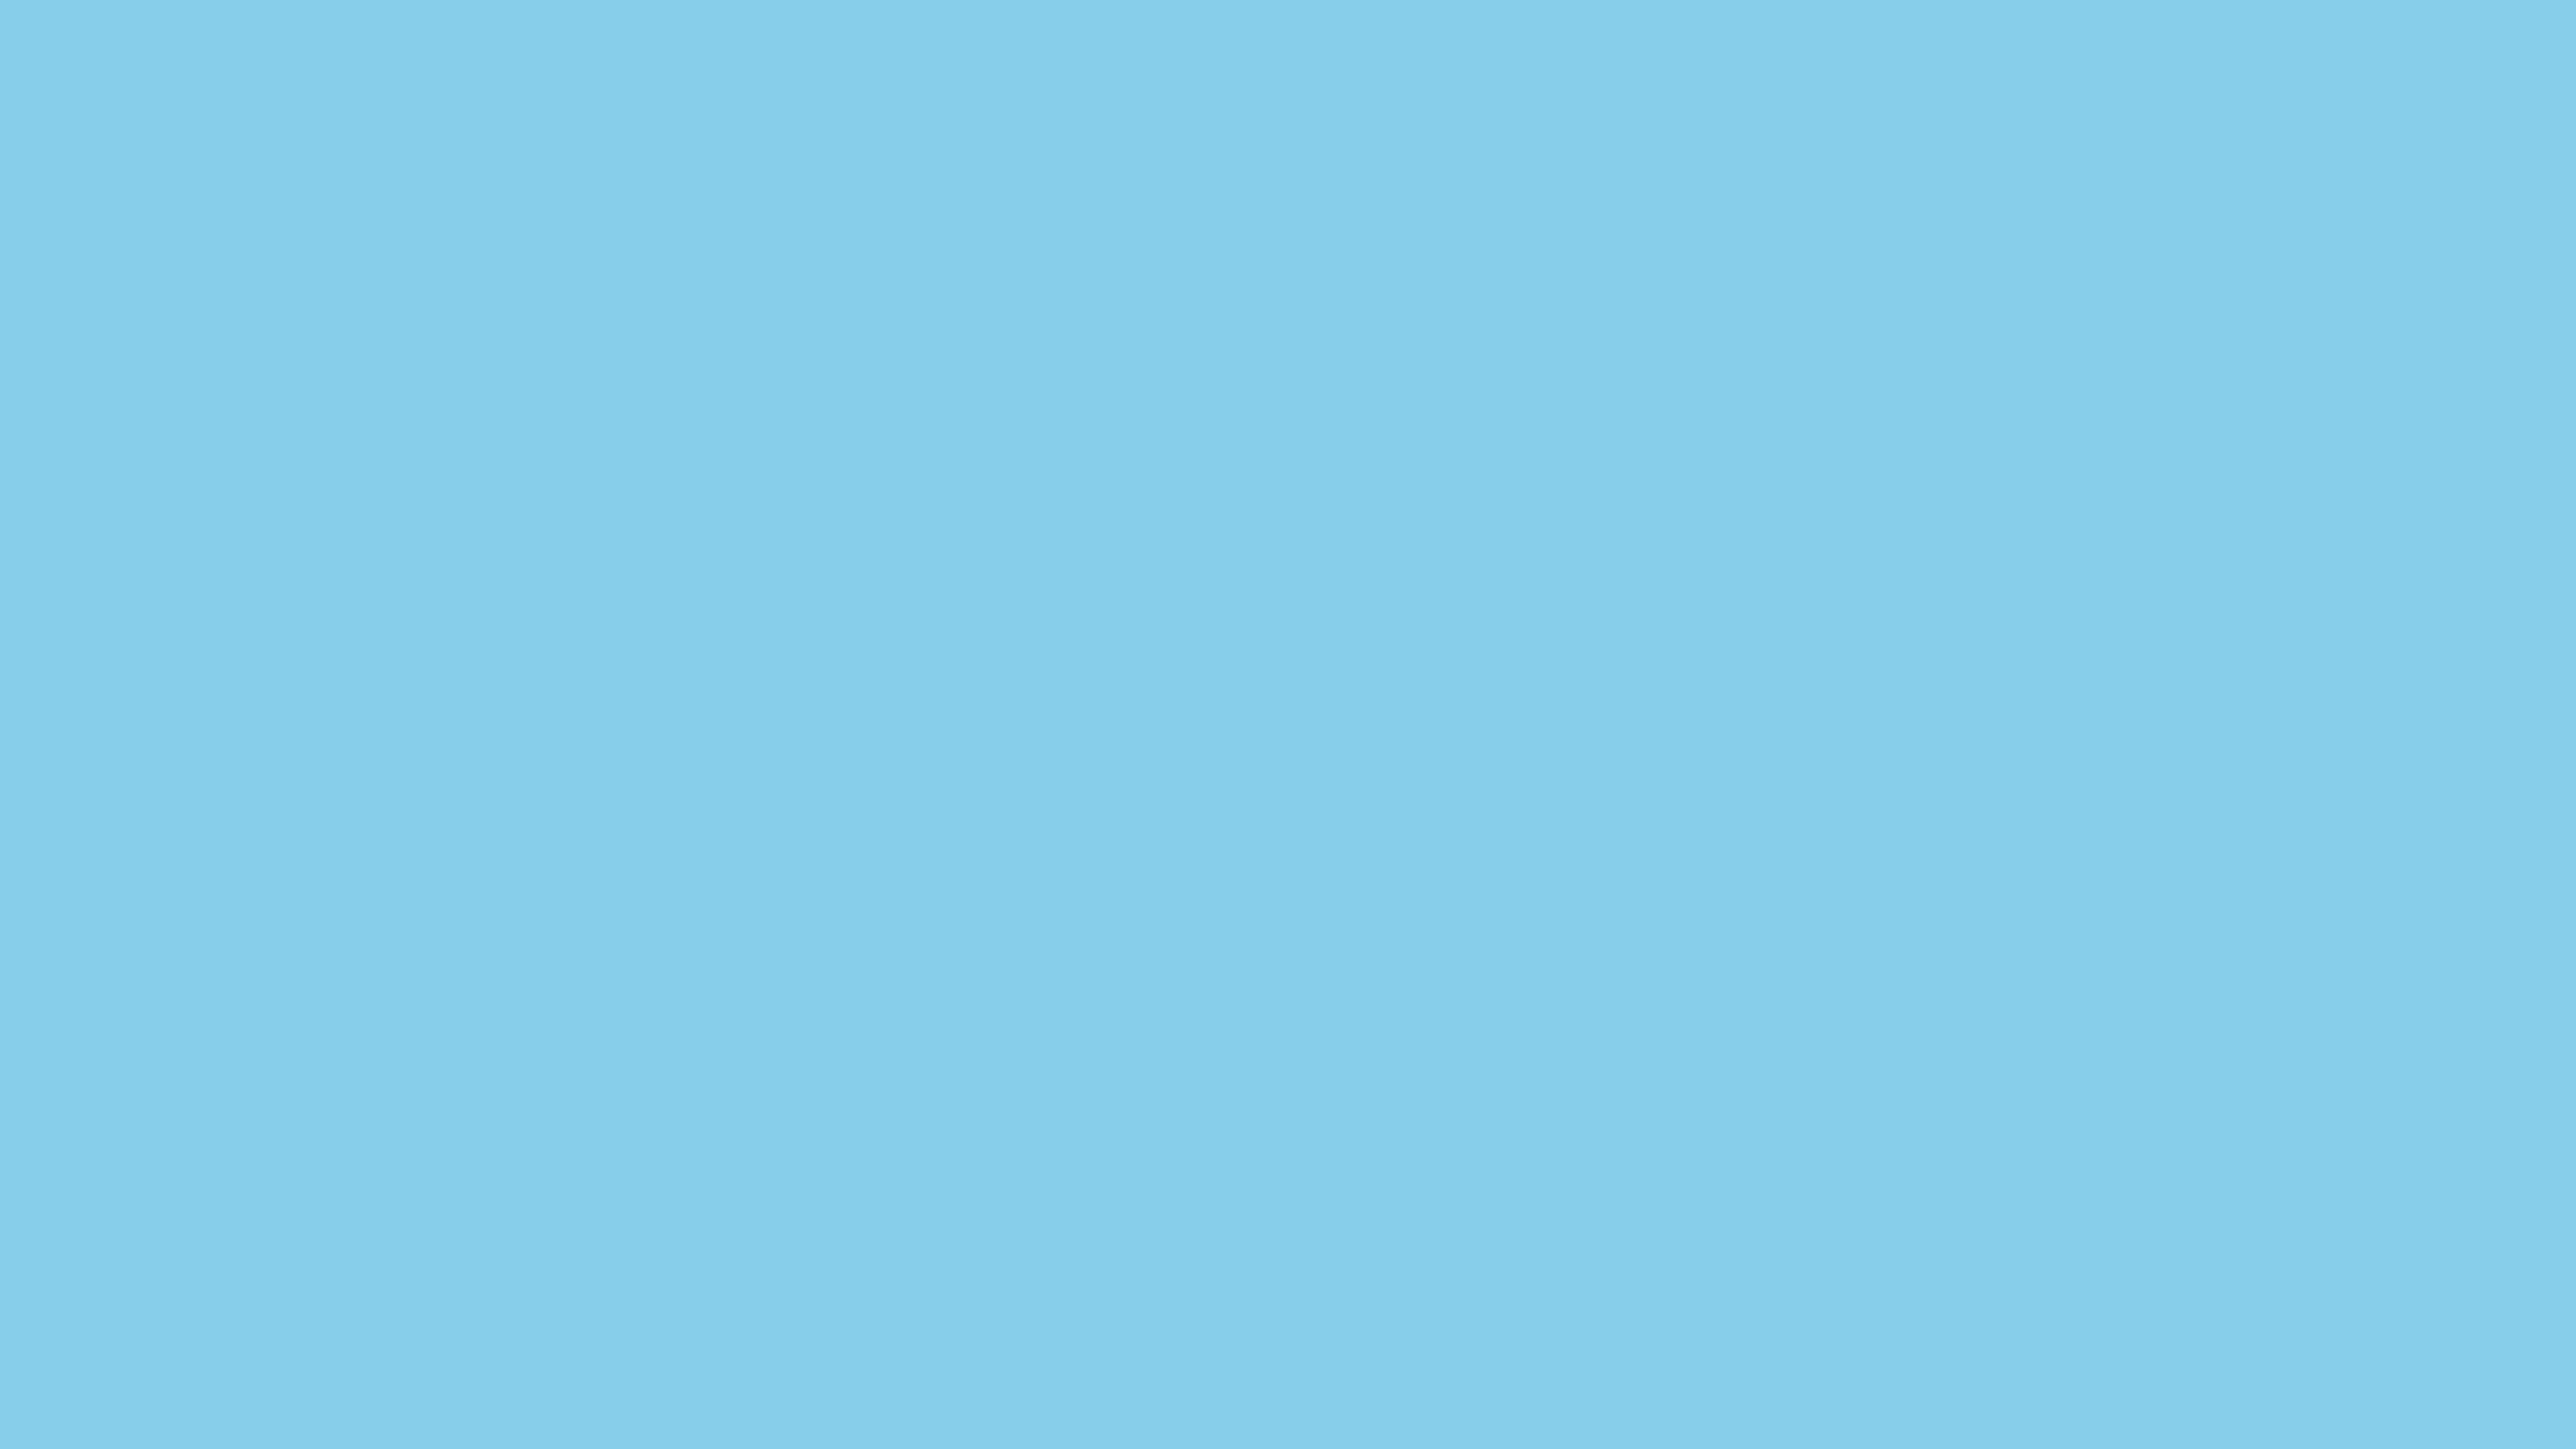 3840x2160 Sky Blue Solid Color Background